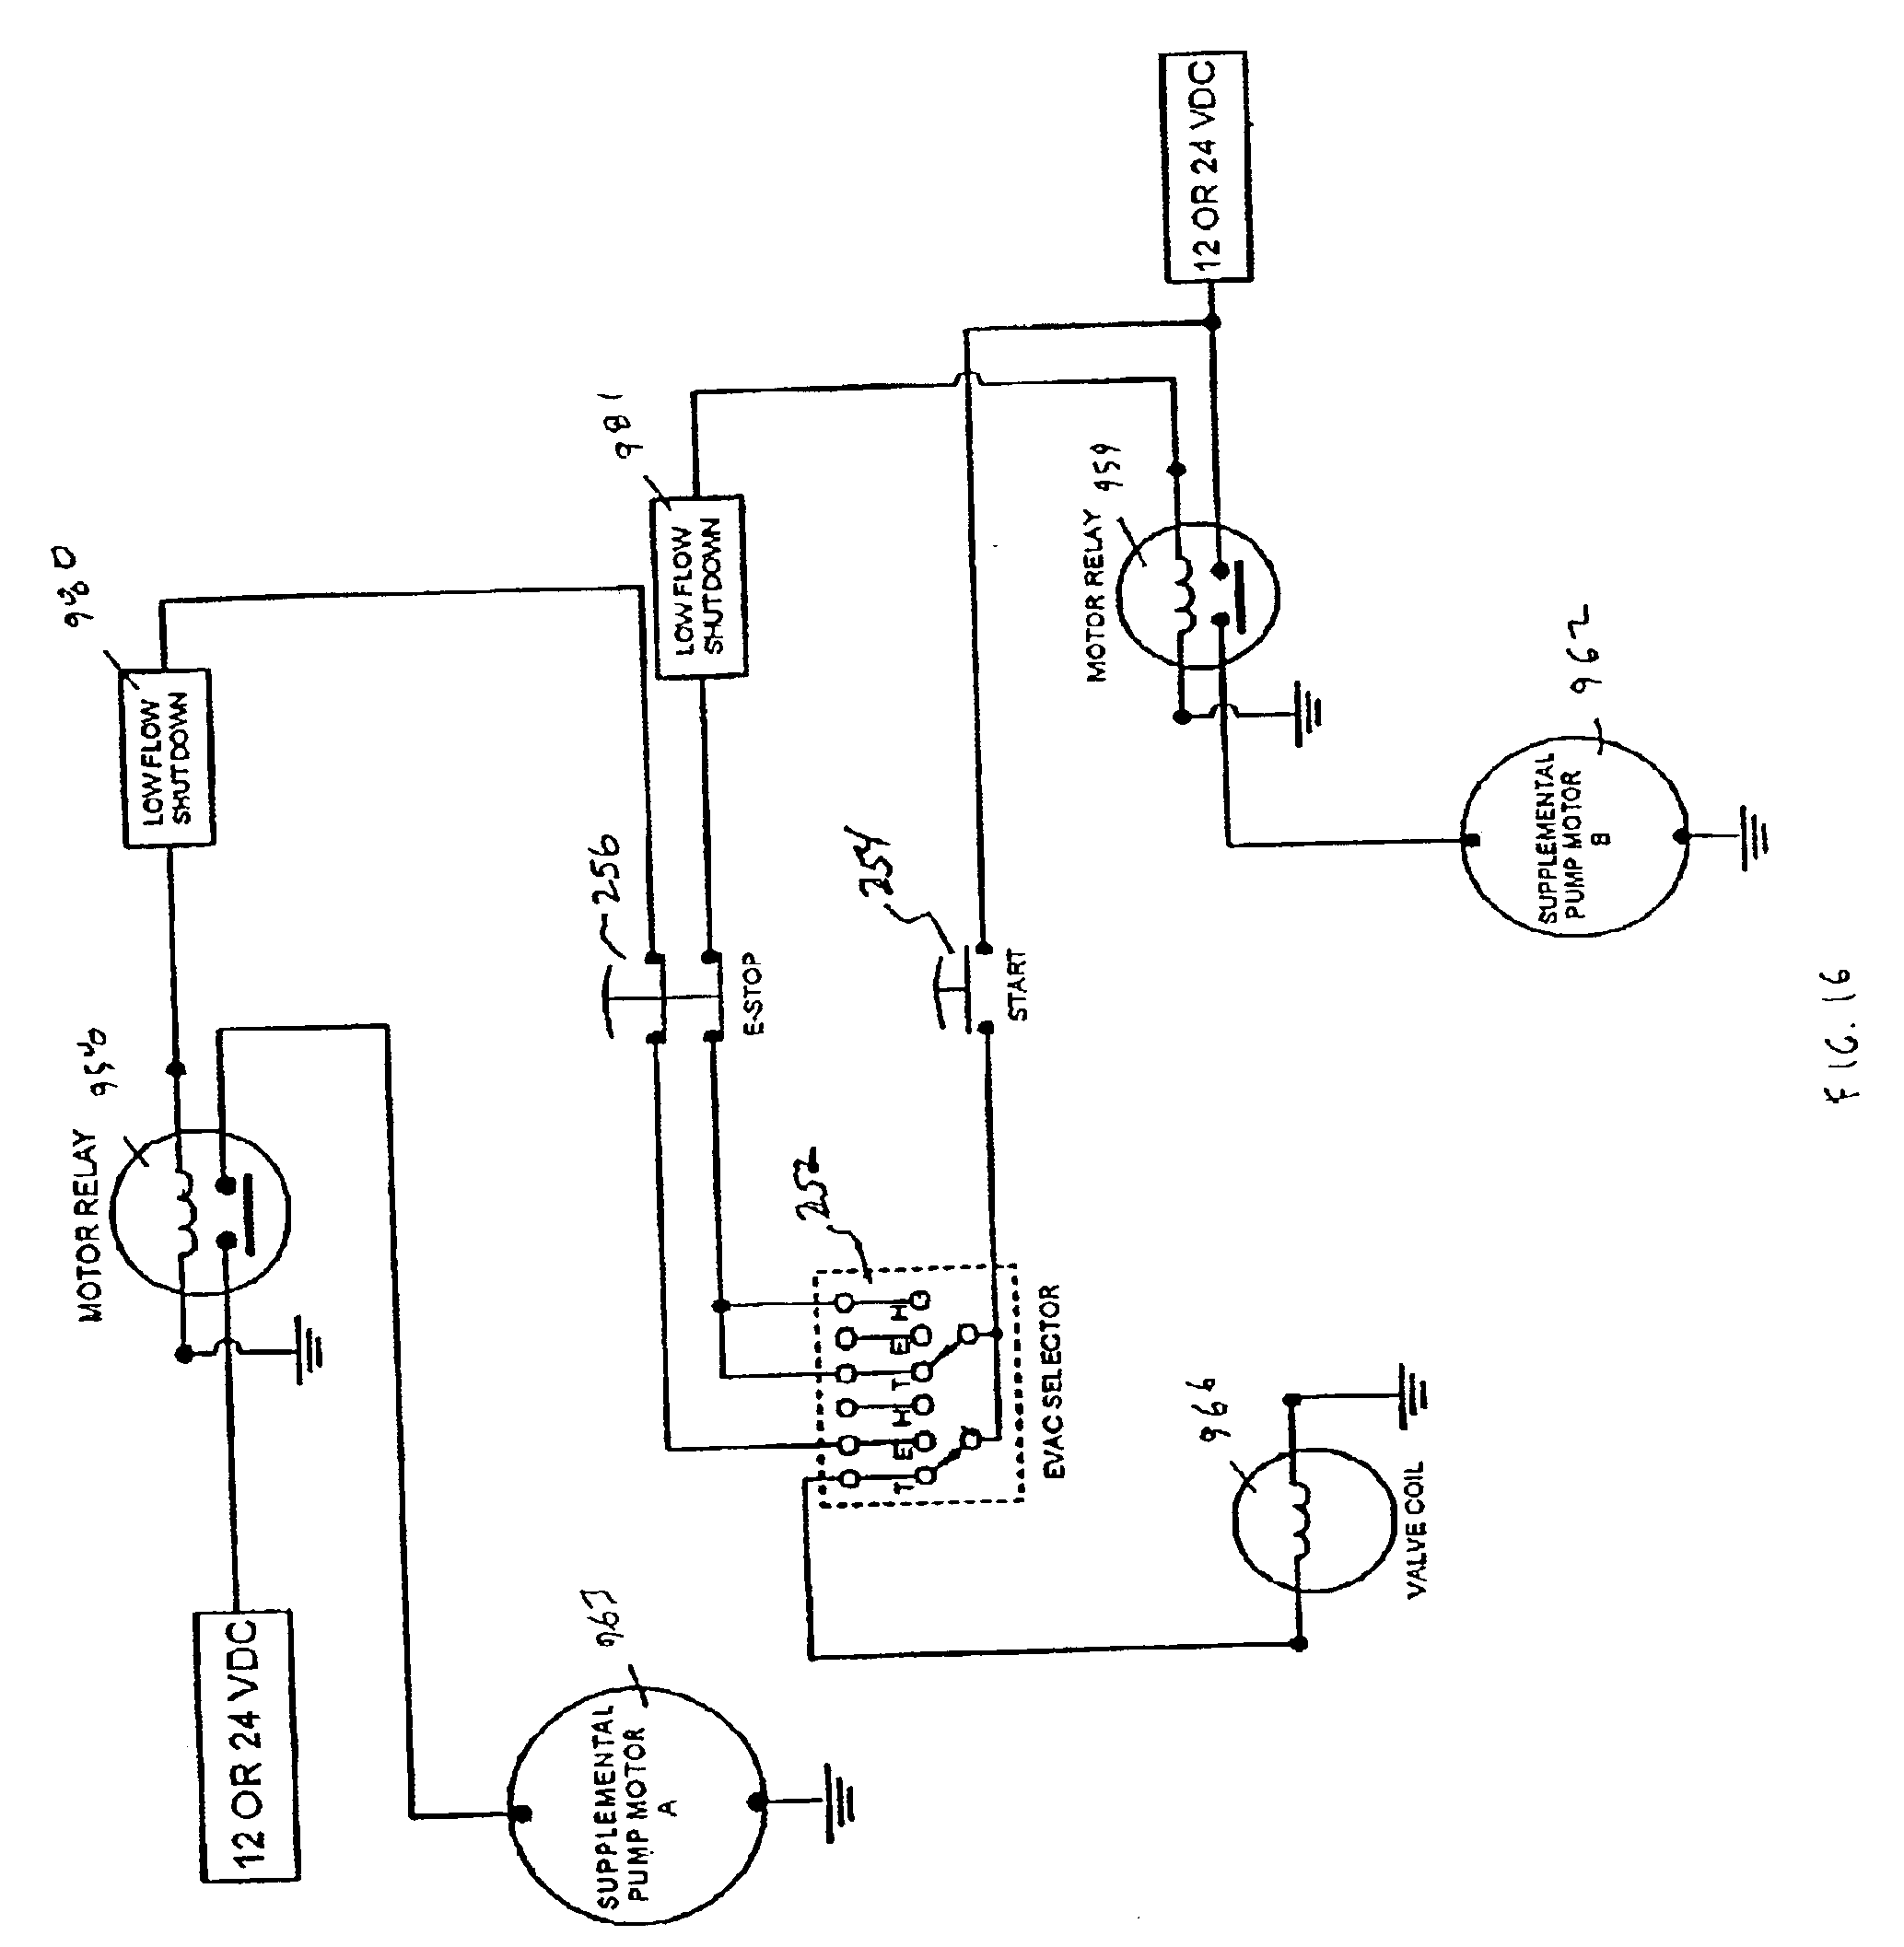 Ih Cub Wiring Diagram